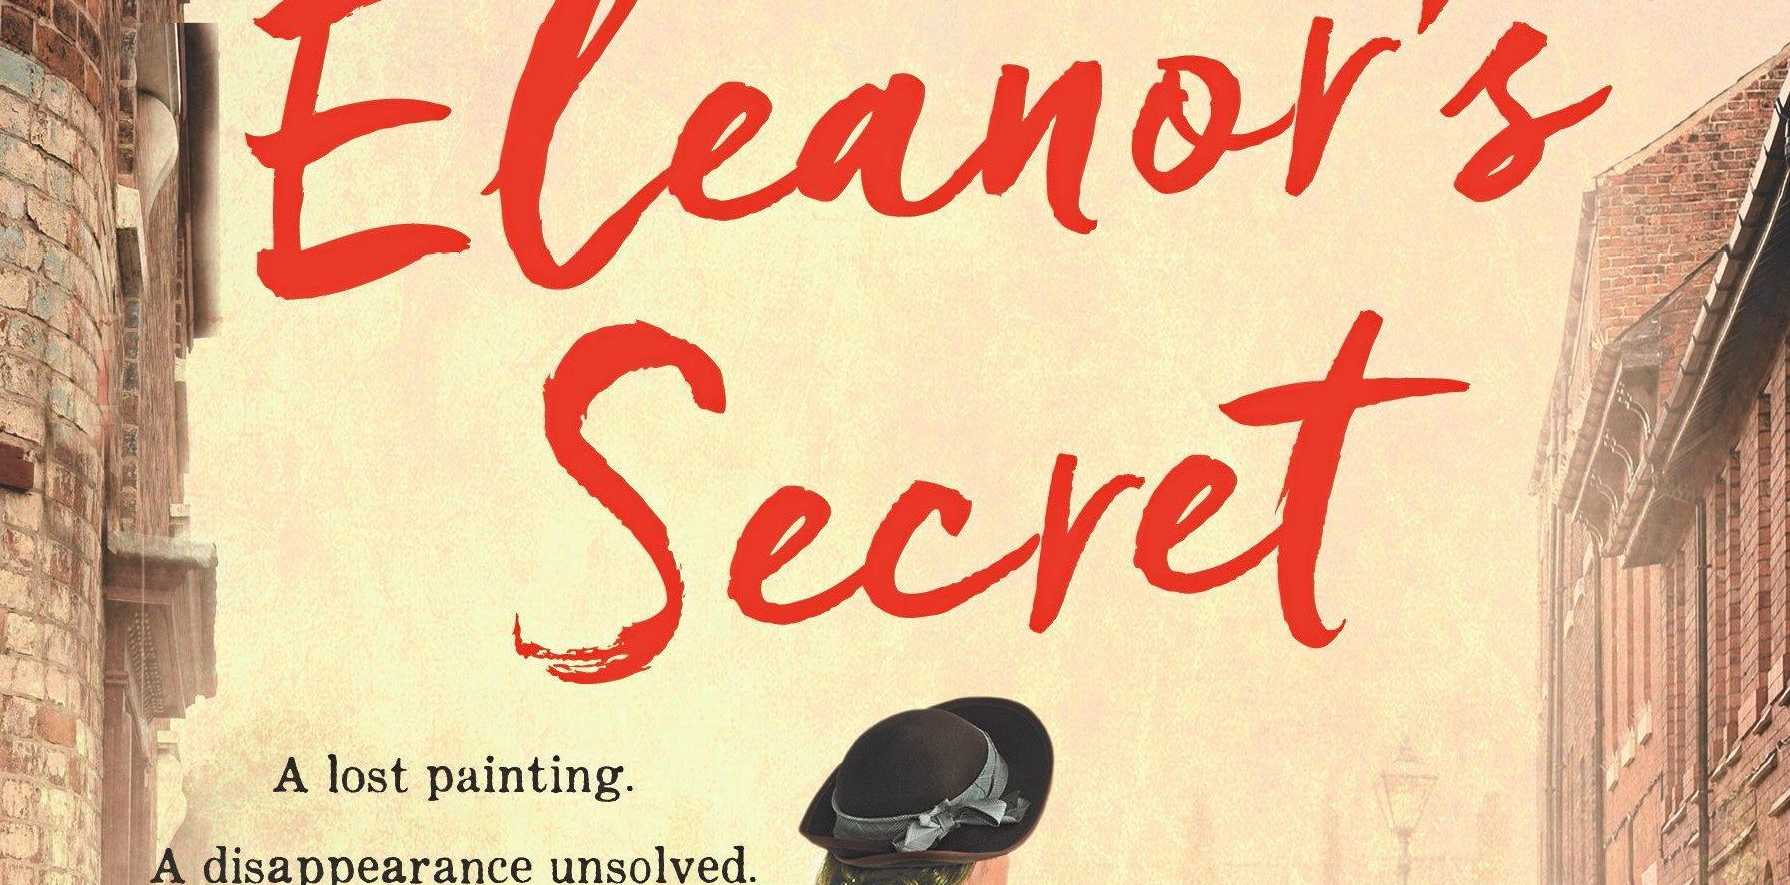 NEW BOOK: Eleanor's Secret is the newest book by Australian author Caroline Beecham.